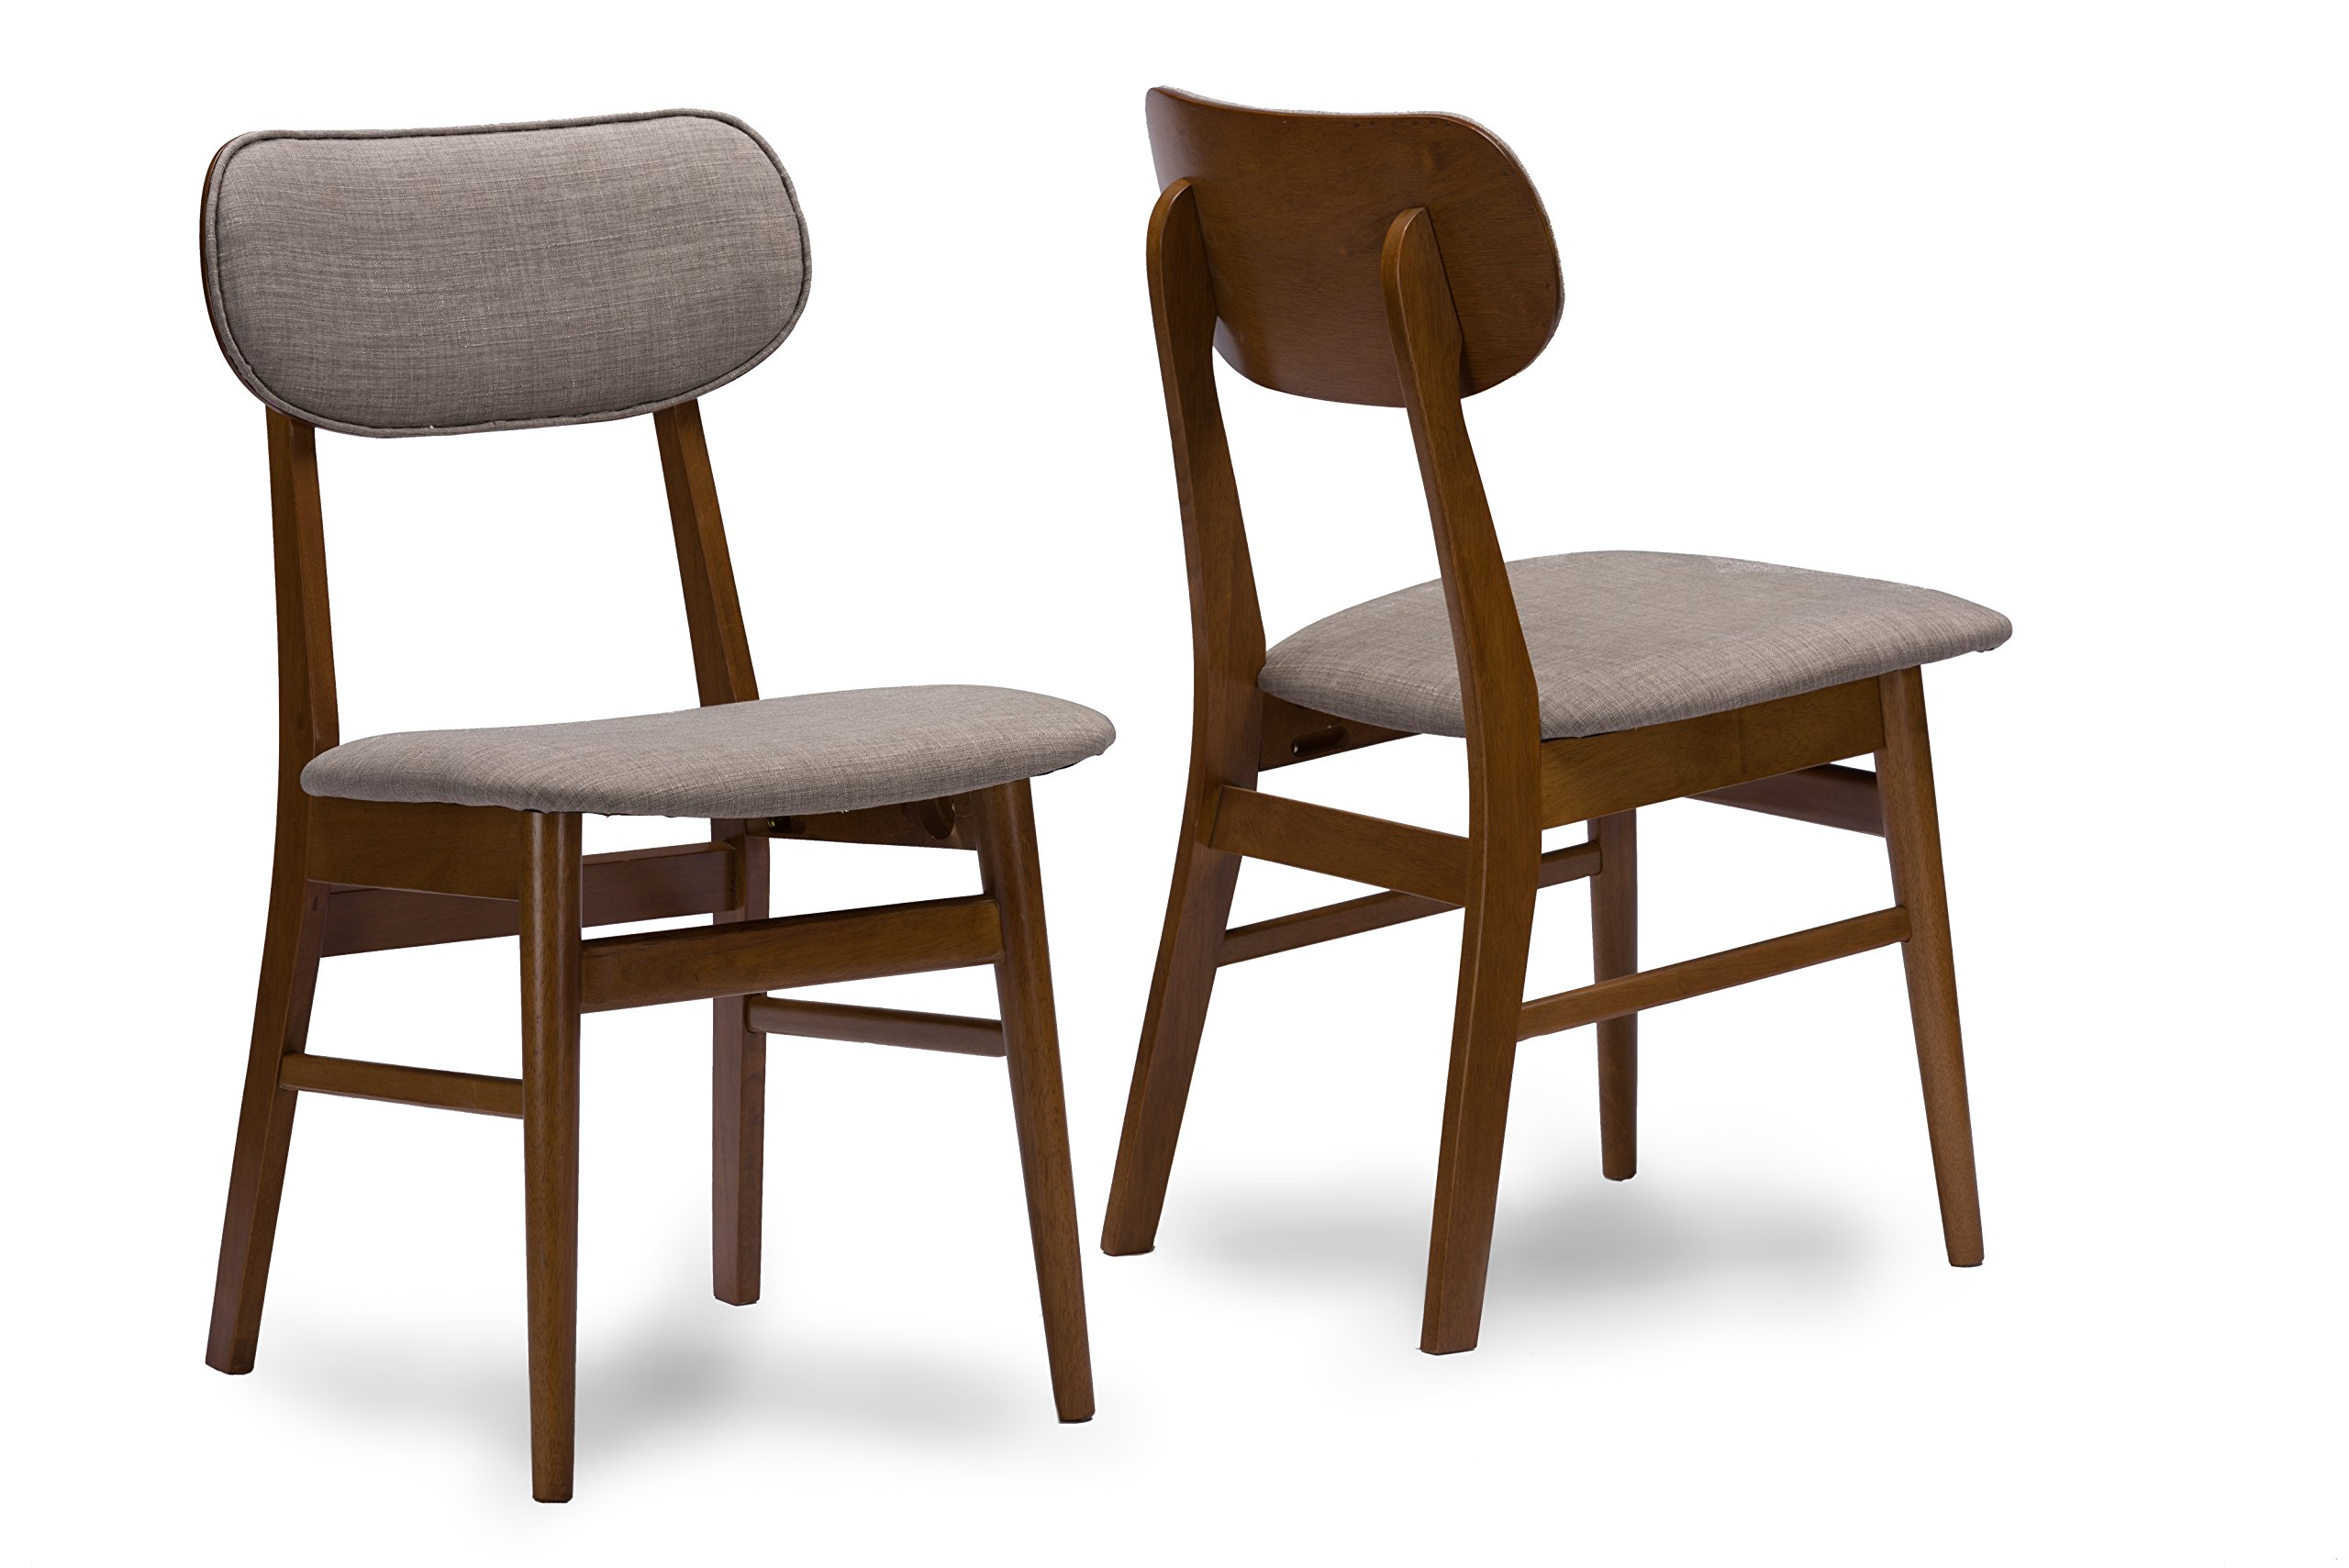 Baxton Studio Sacramento Mid-Century Dark Walnut Wood and Grey Faux Leather Dining Chairs (Set of 2) - Mid-Century design set of 2 dining chairs Solid rubber wood with veneer finishing Grey fabric upholstery with foam padding - kitchen-dining-room-furniture, kitchen-dining-room, kitchen-dining-room-chairs - 81v NfcWISL -